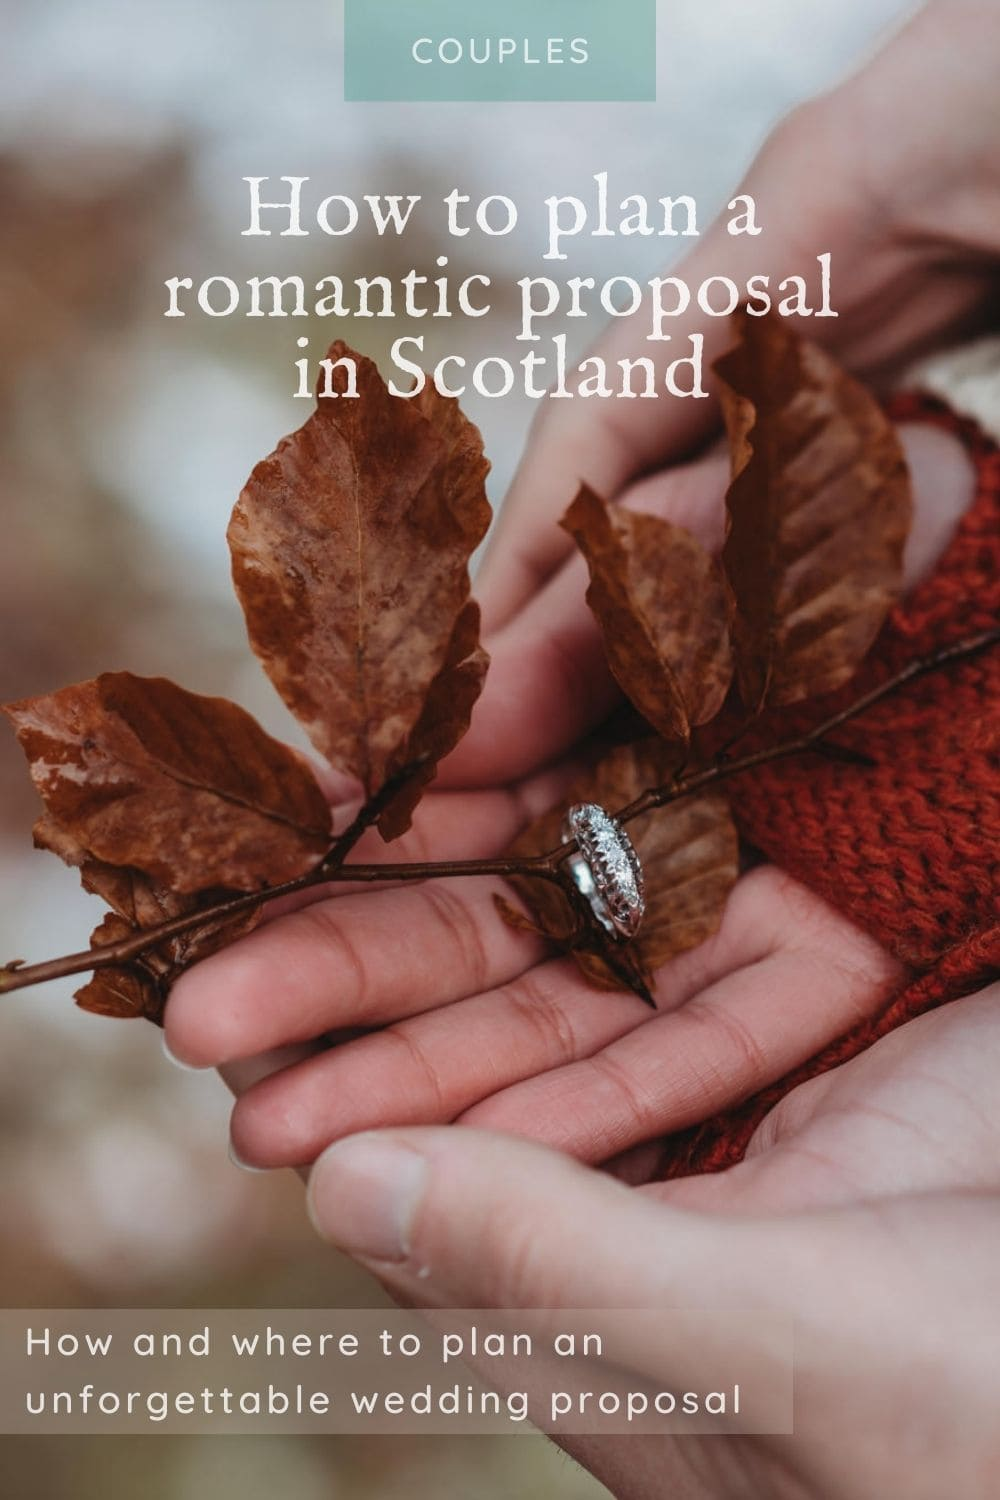 Planning a proposal in Scotland